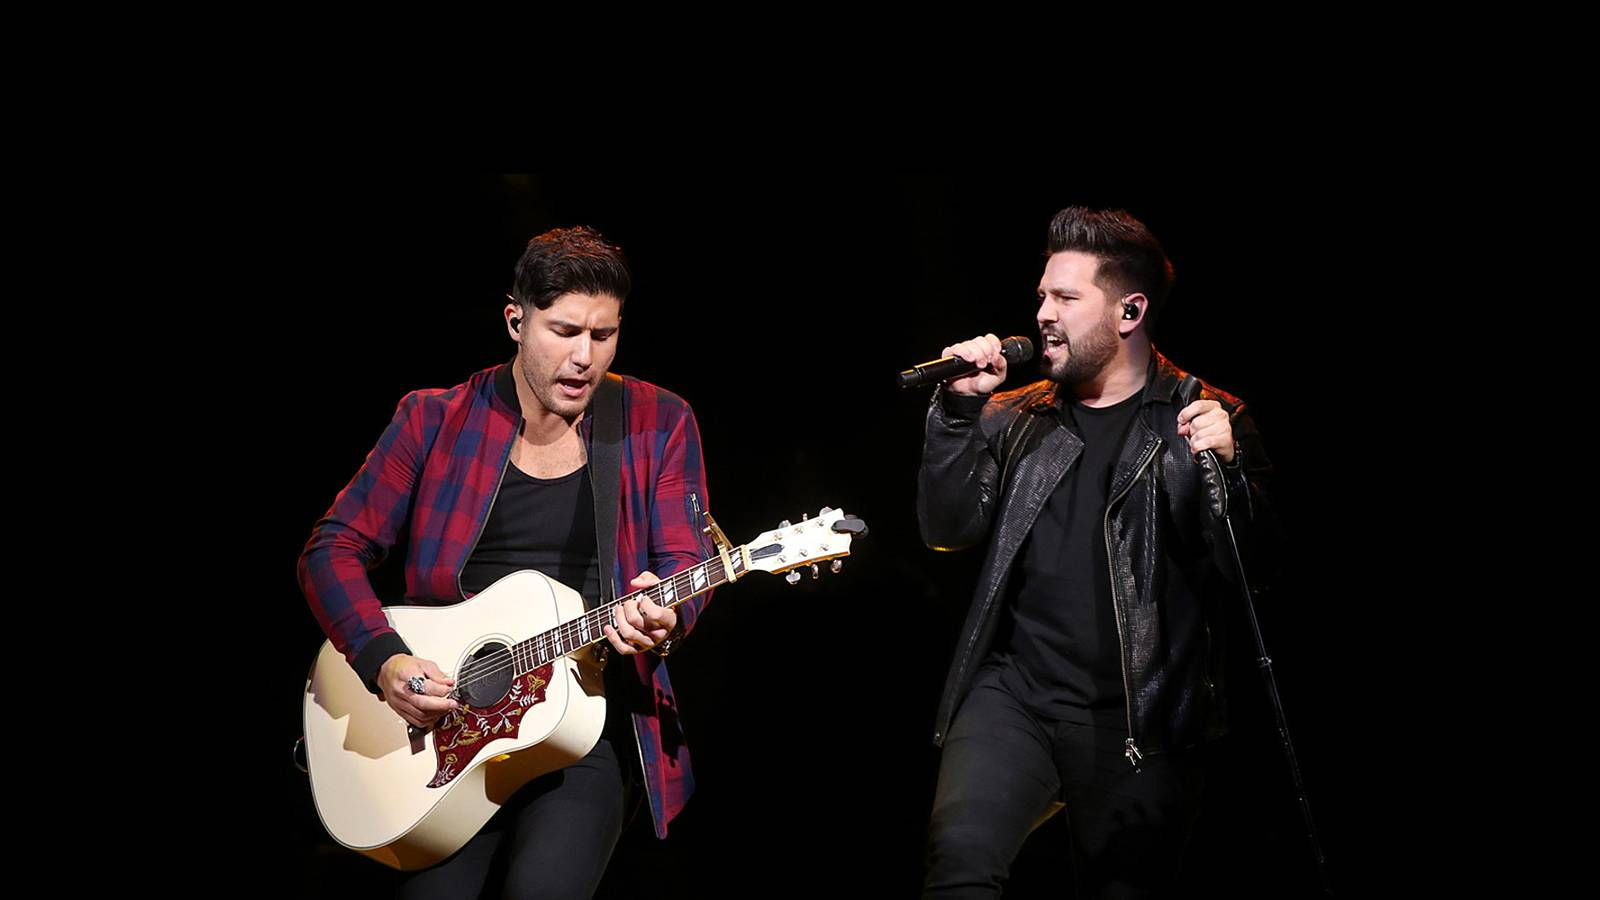 Dan and Shay (Rescheduled from 3/21)